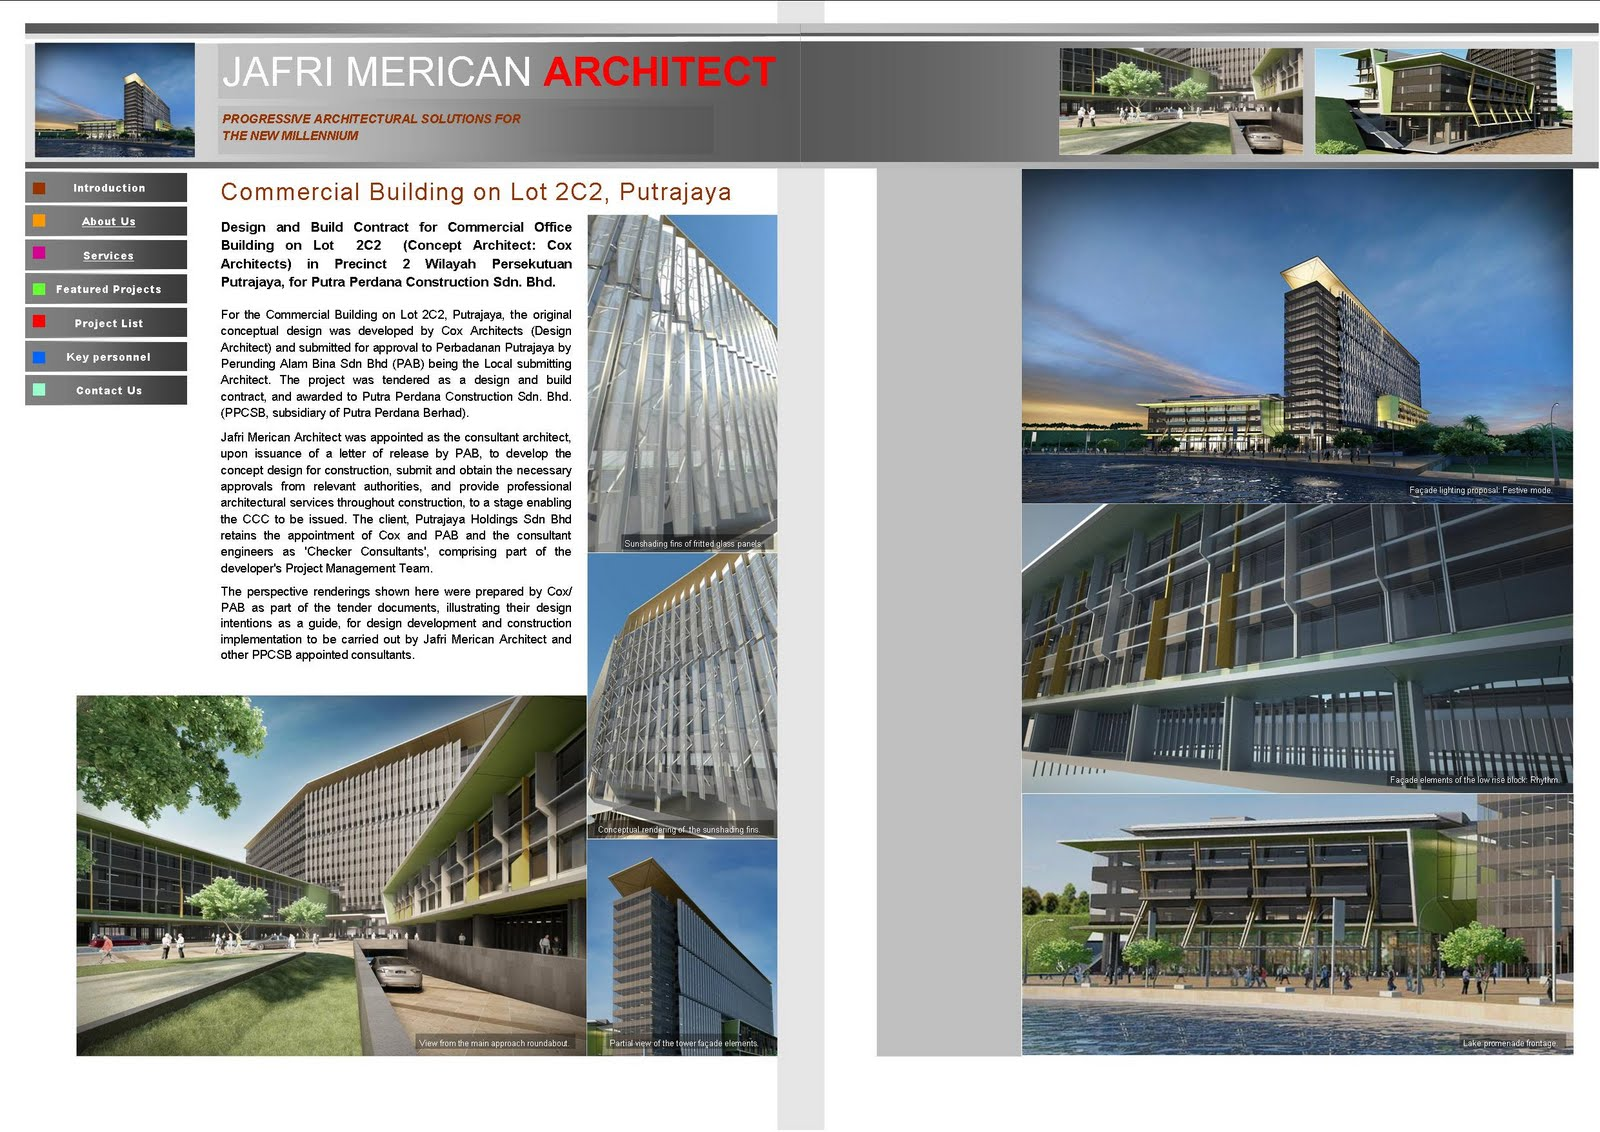 jafri merican architect cv commercial building on lot c putrajaya cv commercial building on lot 2c2 putrajaya